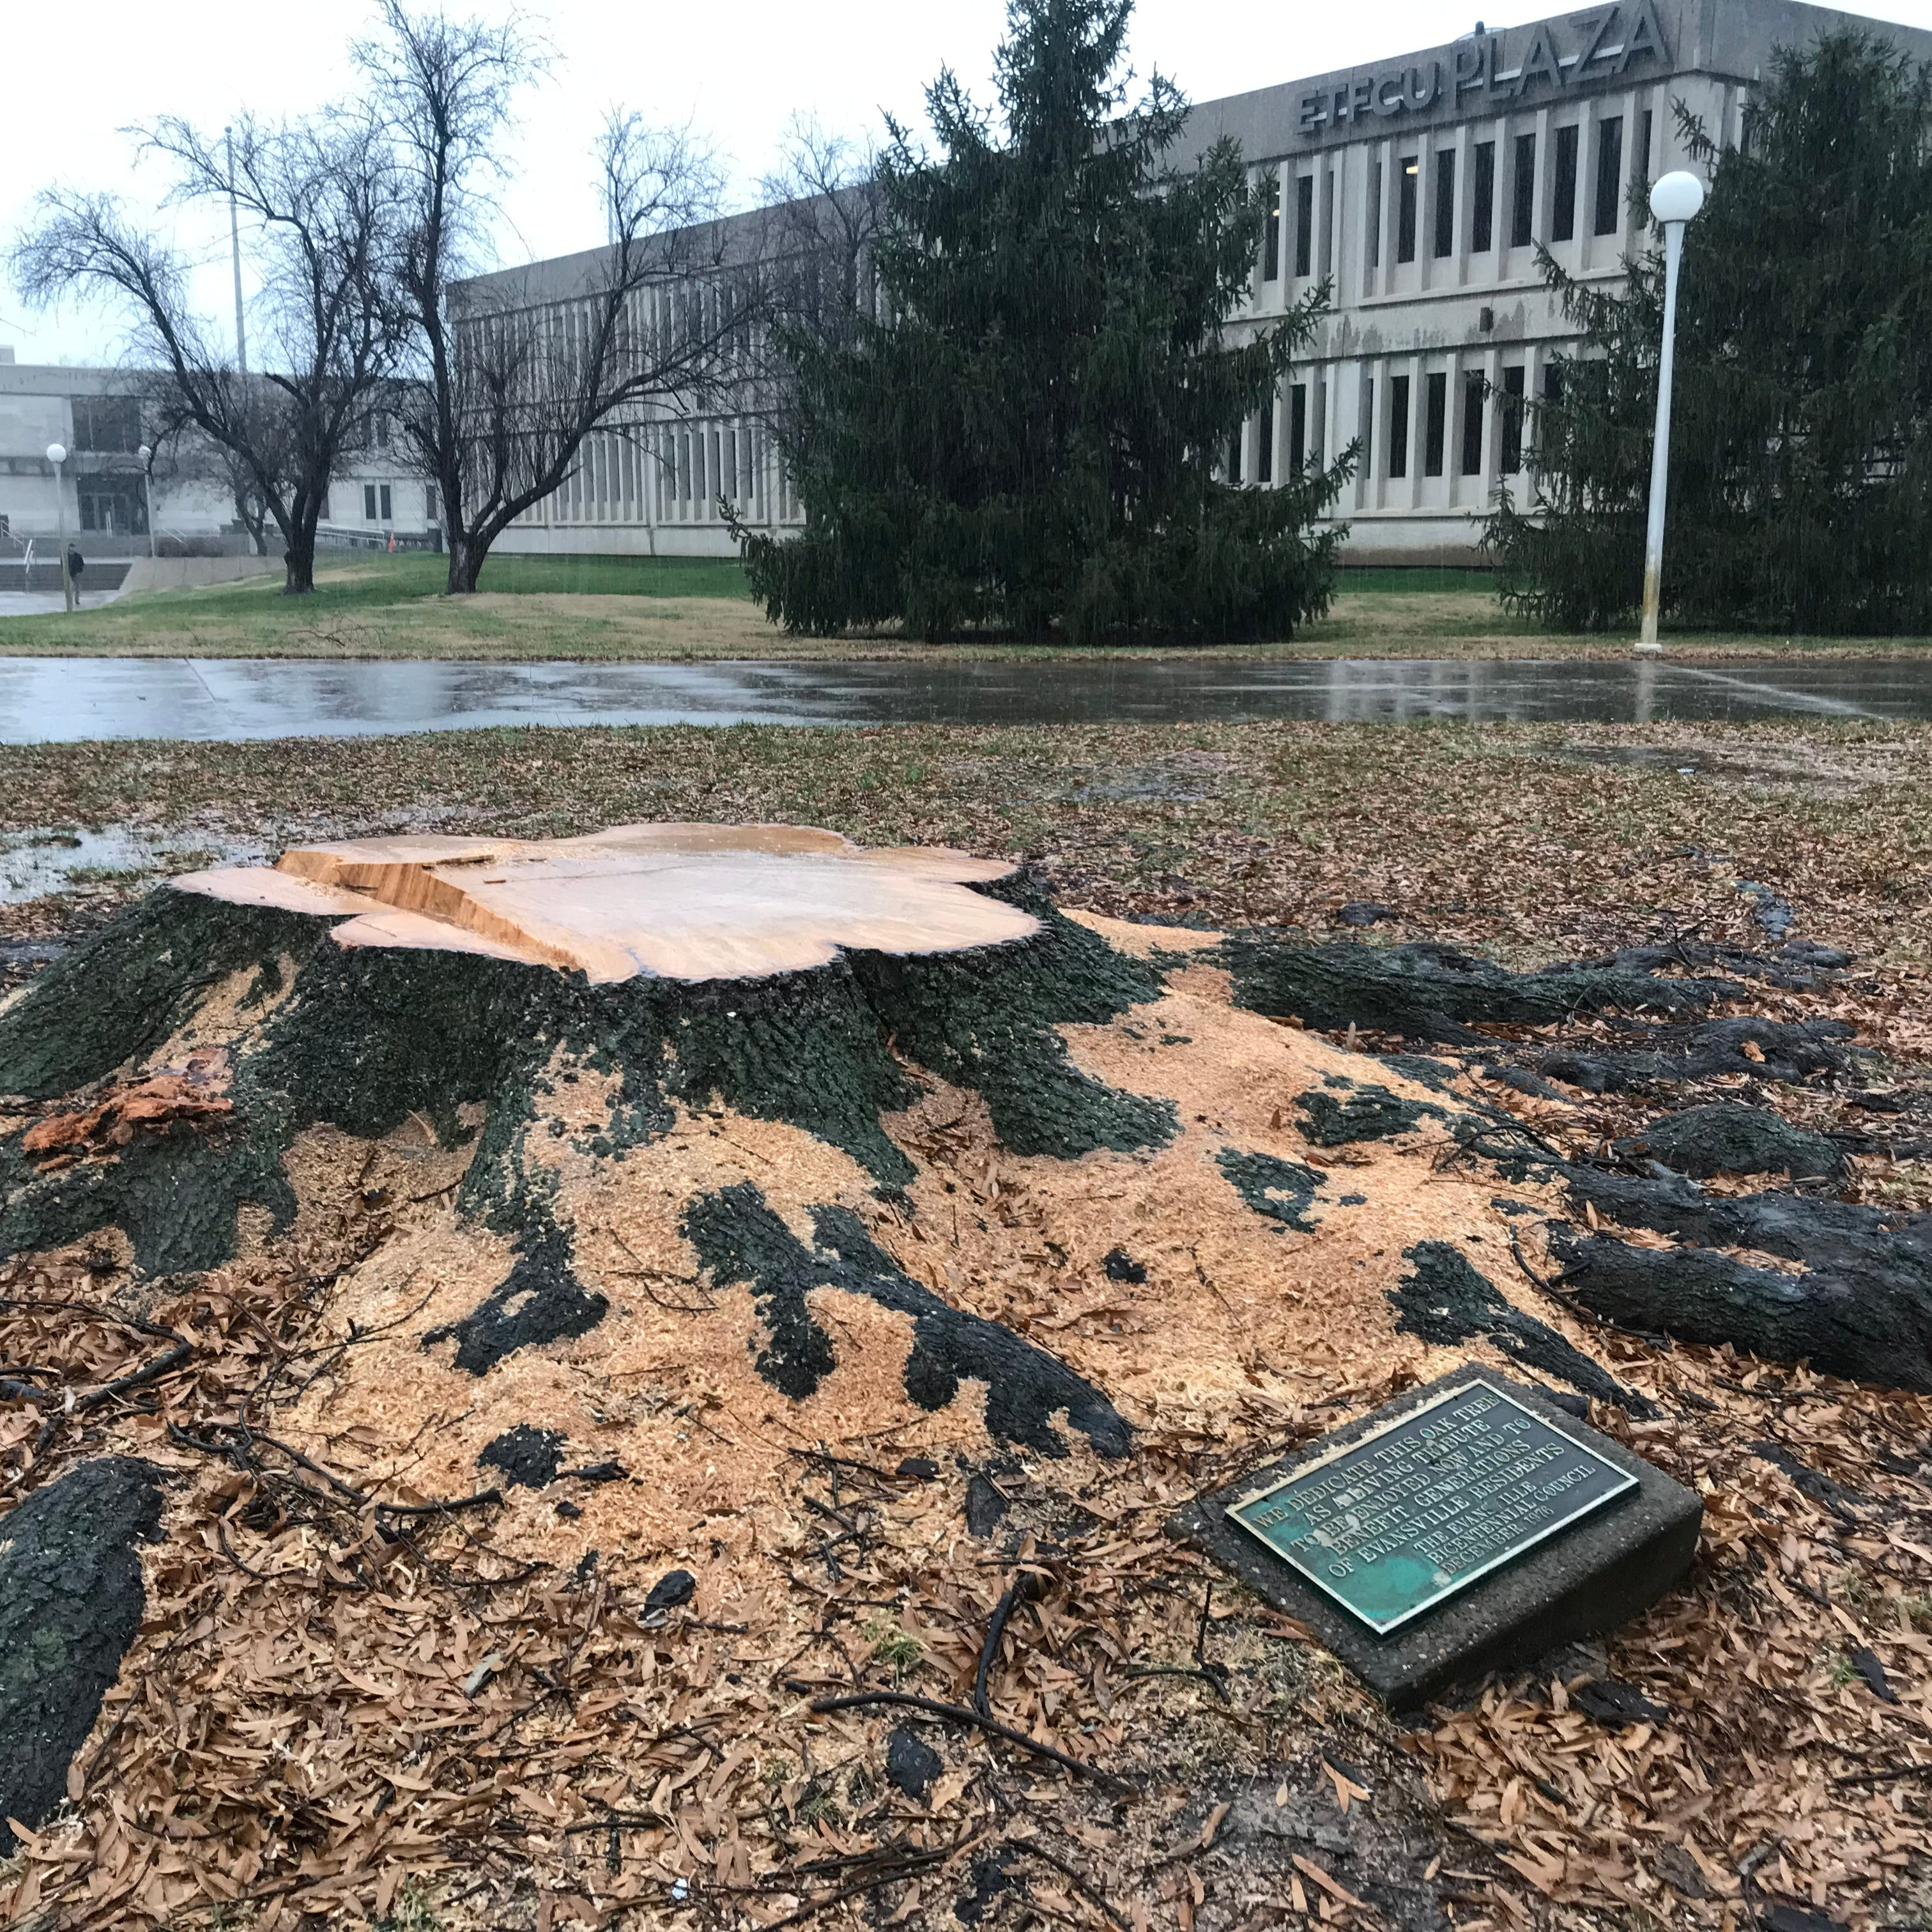 Contractors say: 'Evansville's Bicentennial Tree was not cut down by mistake'